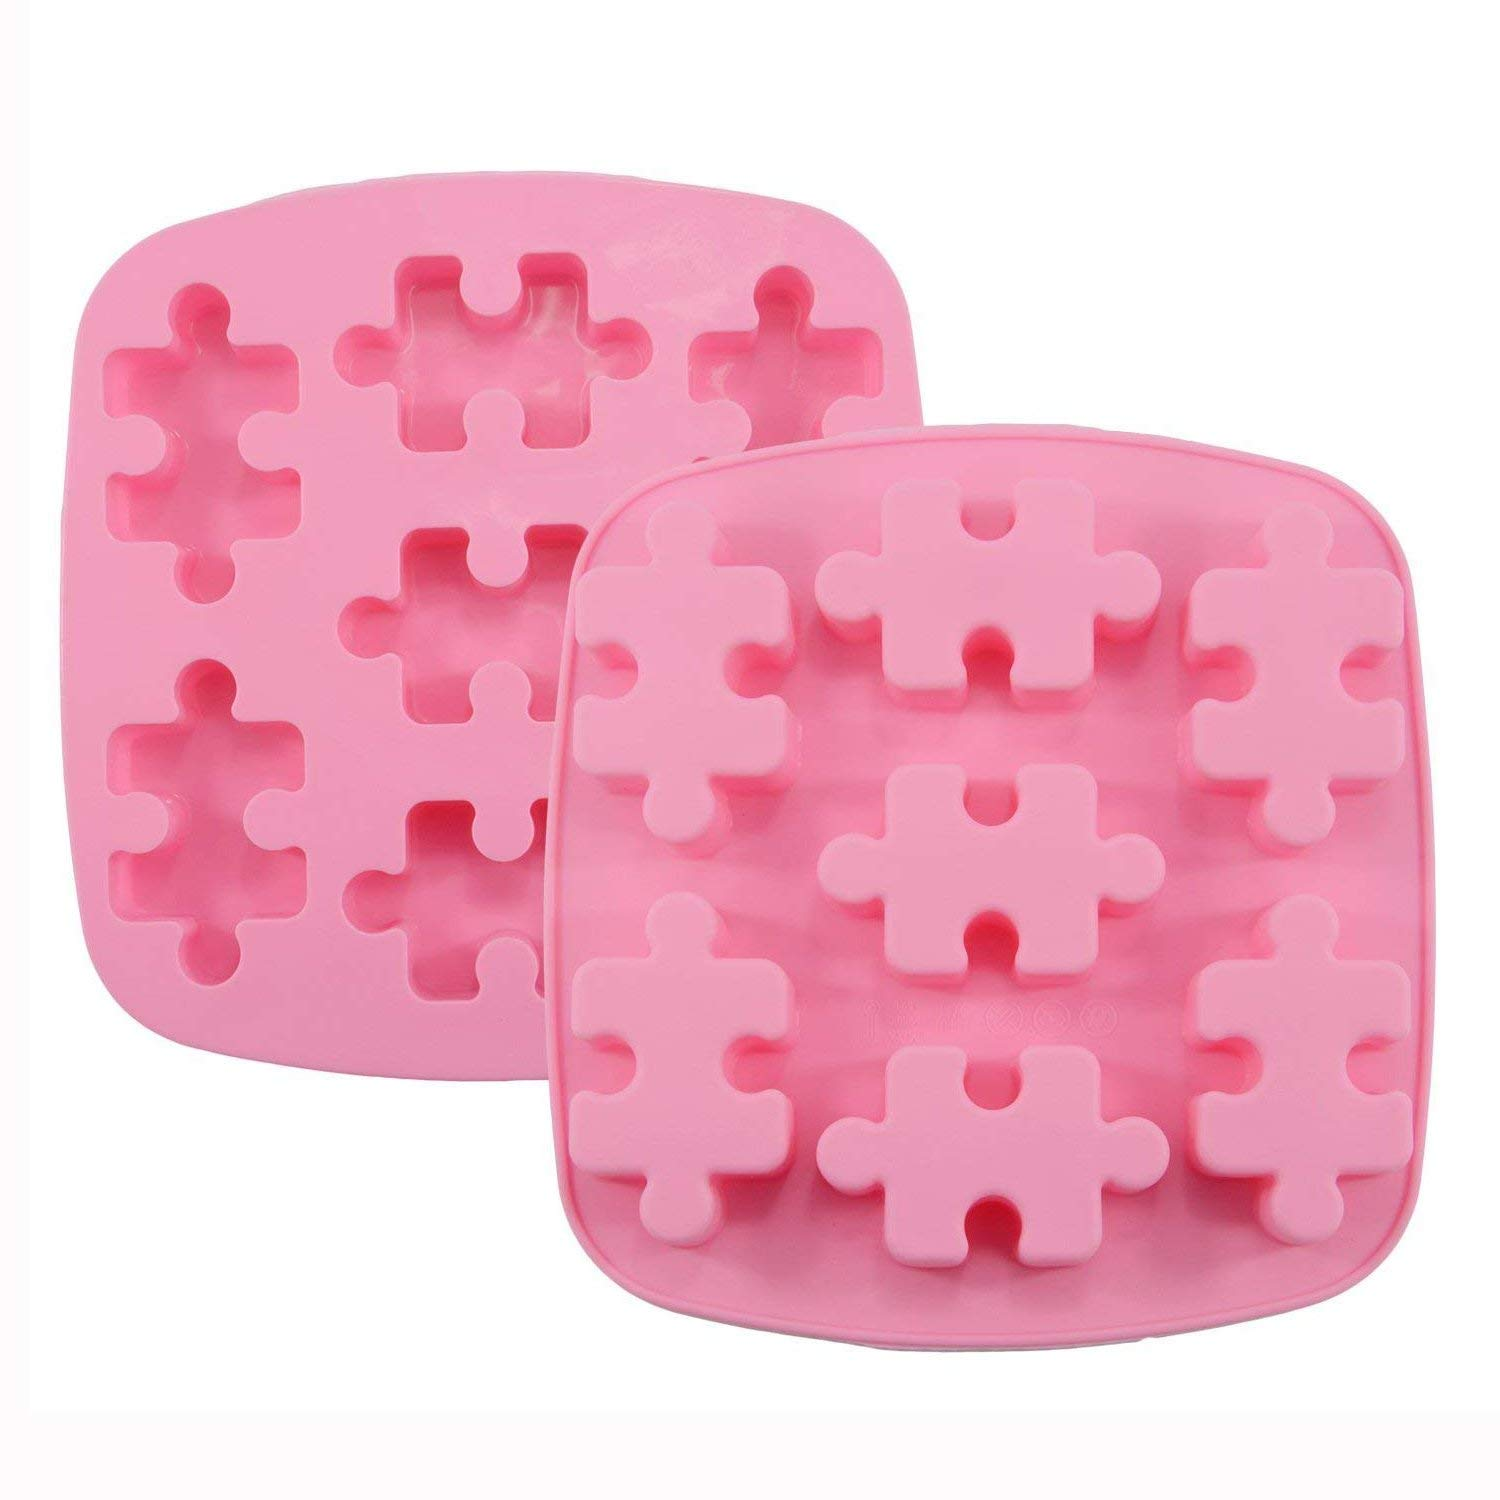 Himi Puzzle Piece Mold Puzzle Crayons Maker - Set of 2 - Non-stick Heat Resistance Silicone Puzzle Mold Perfect for Wax Samples, Chocolate, Jello shots, Pudding, Bath Bomb, Soap and Ice Cube etc.